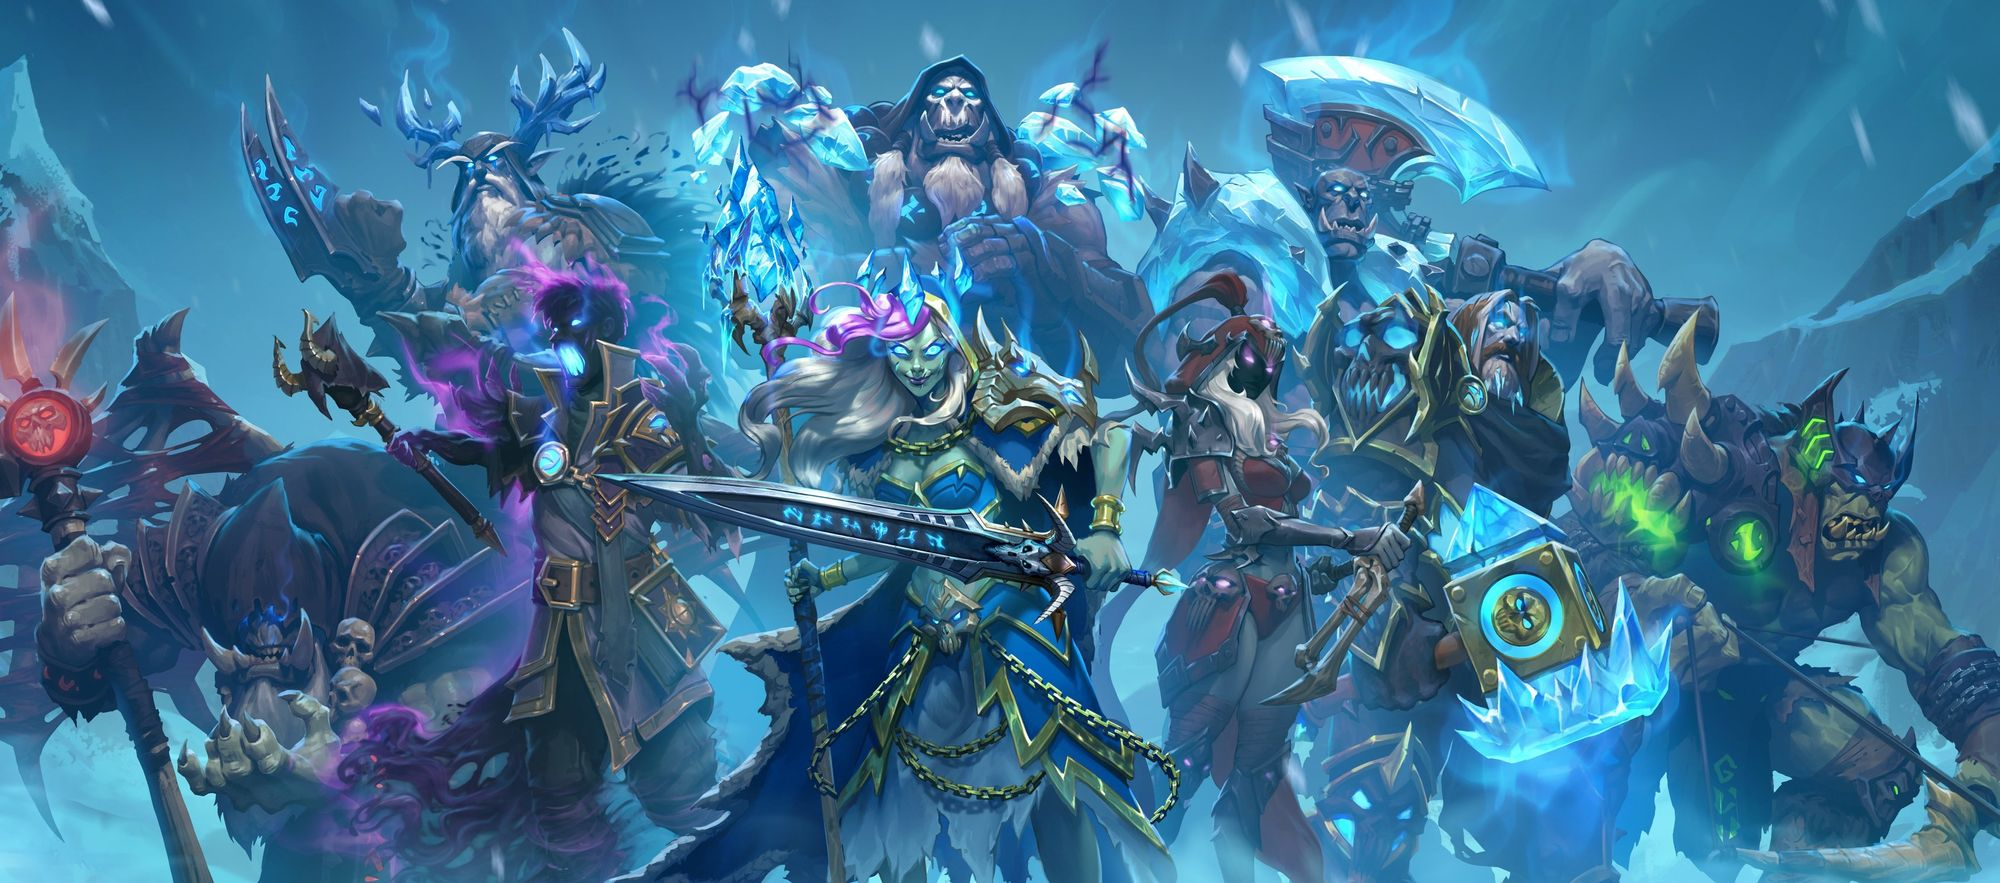 Quests, Death Knights and Legendary Weapons: Showdown